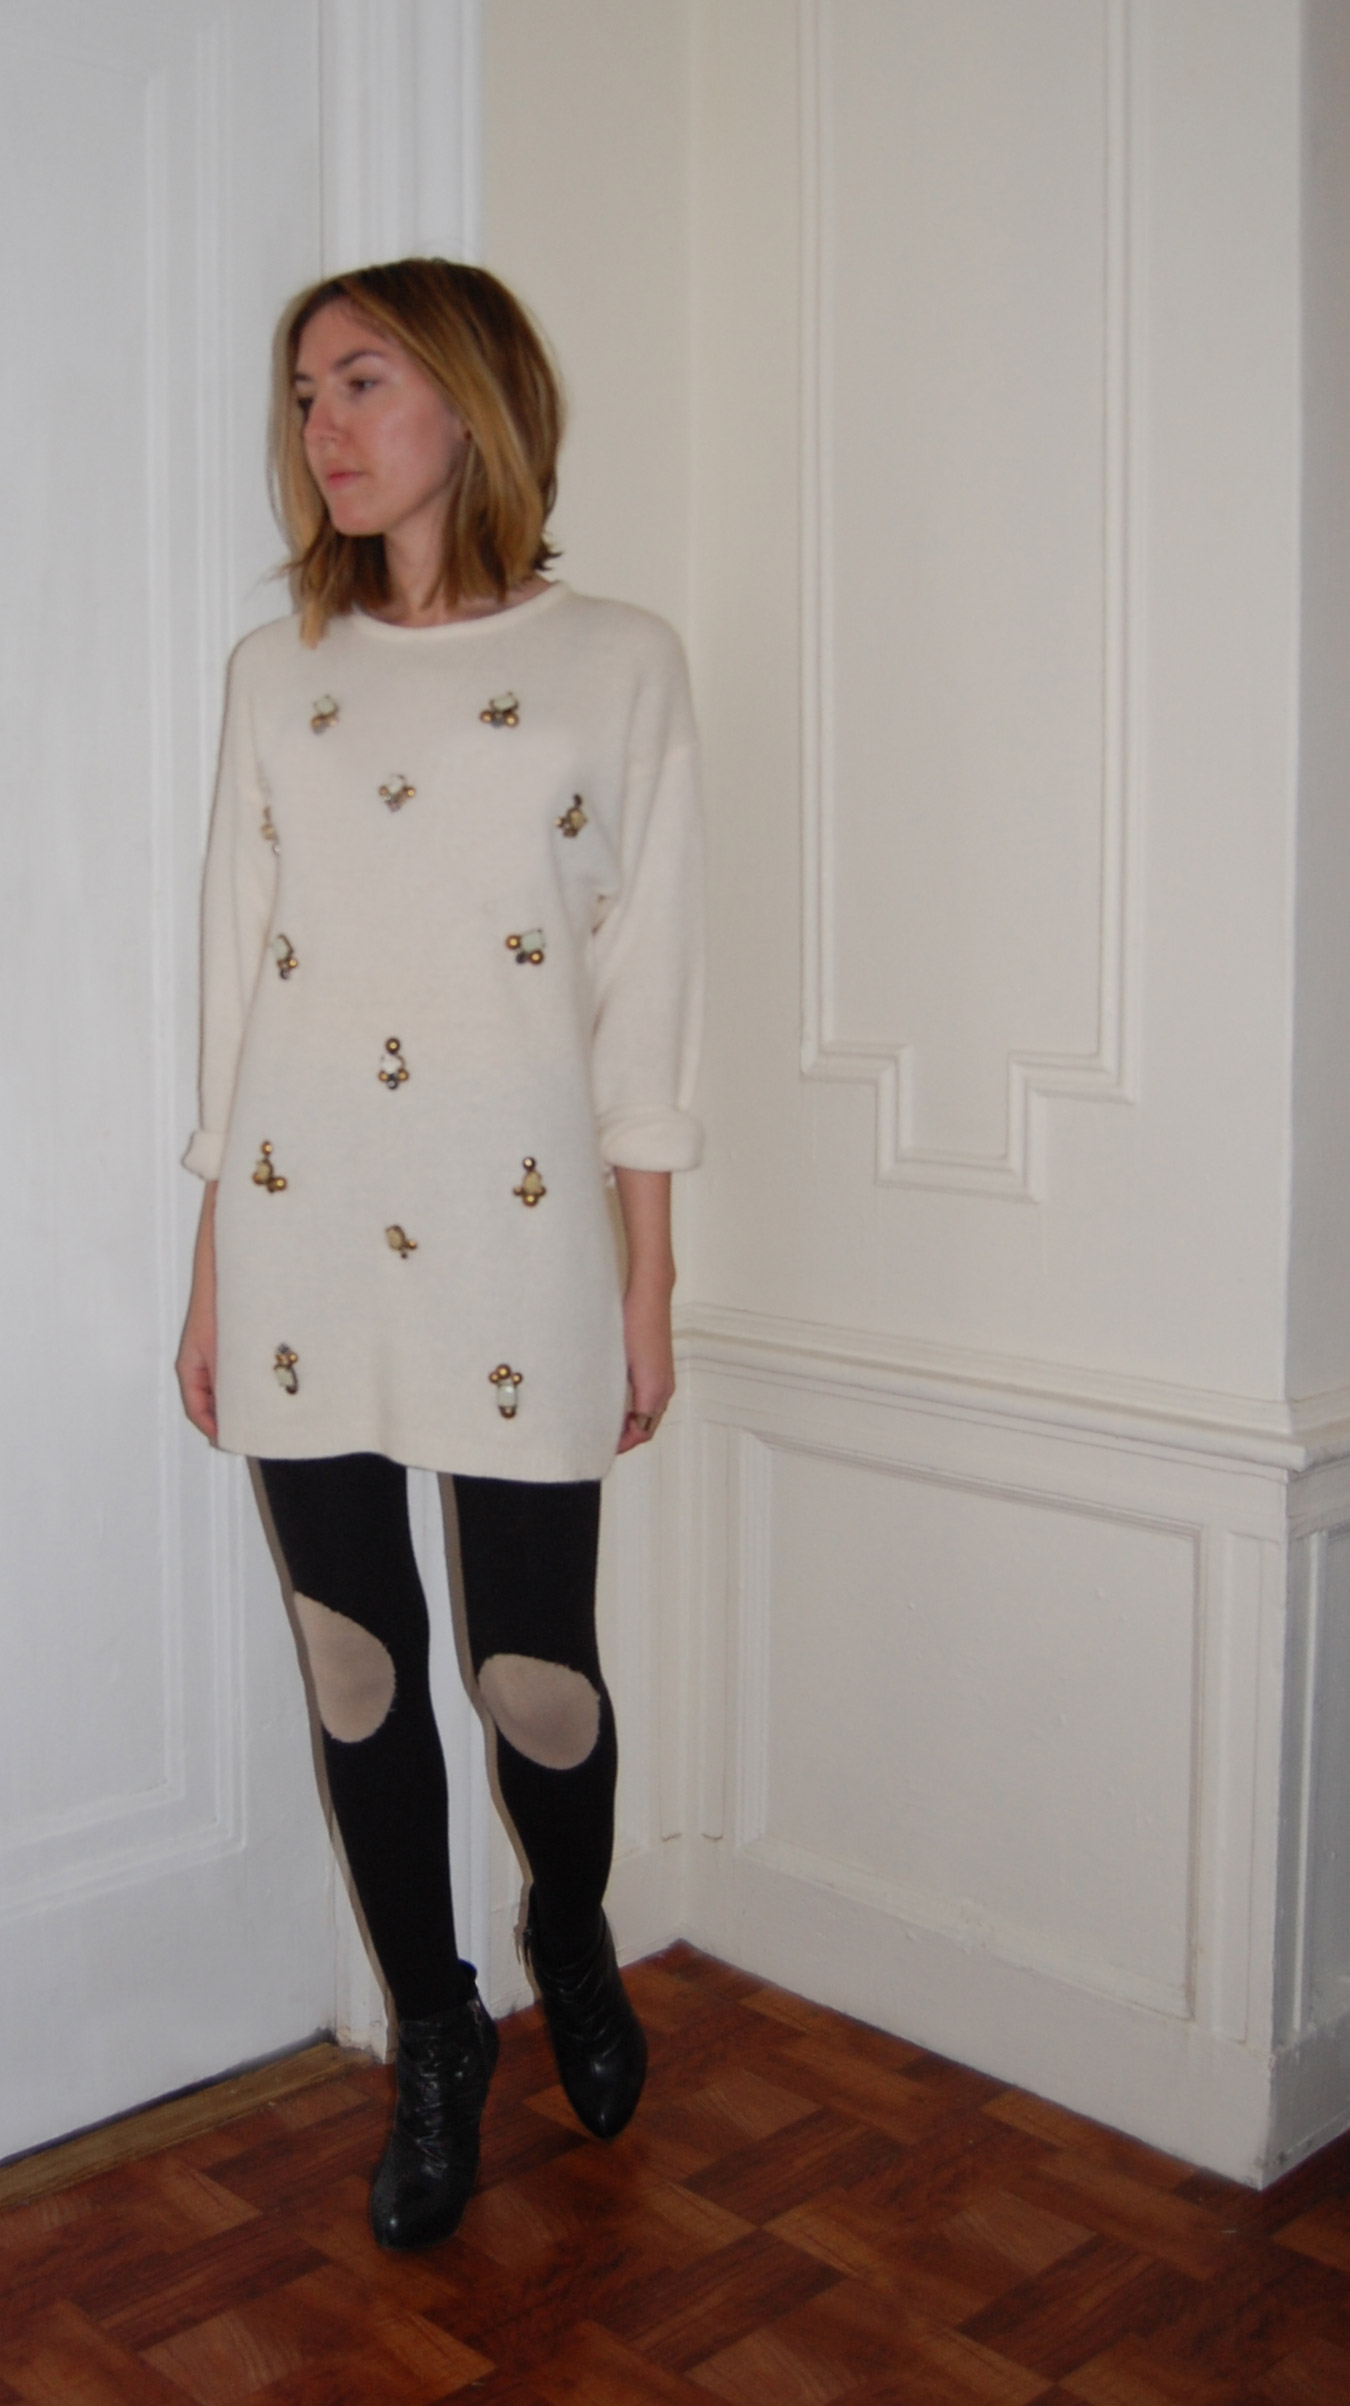 DIY: Embellished Sweater